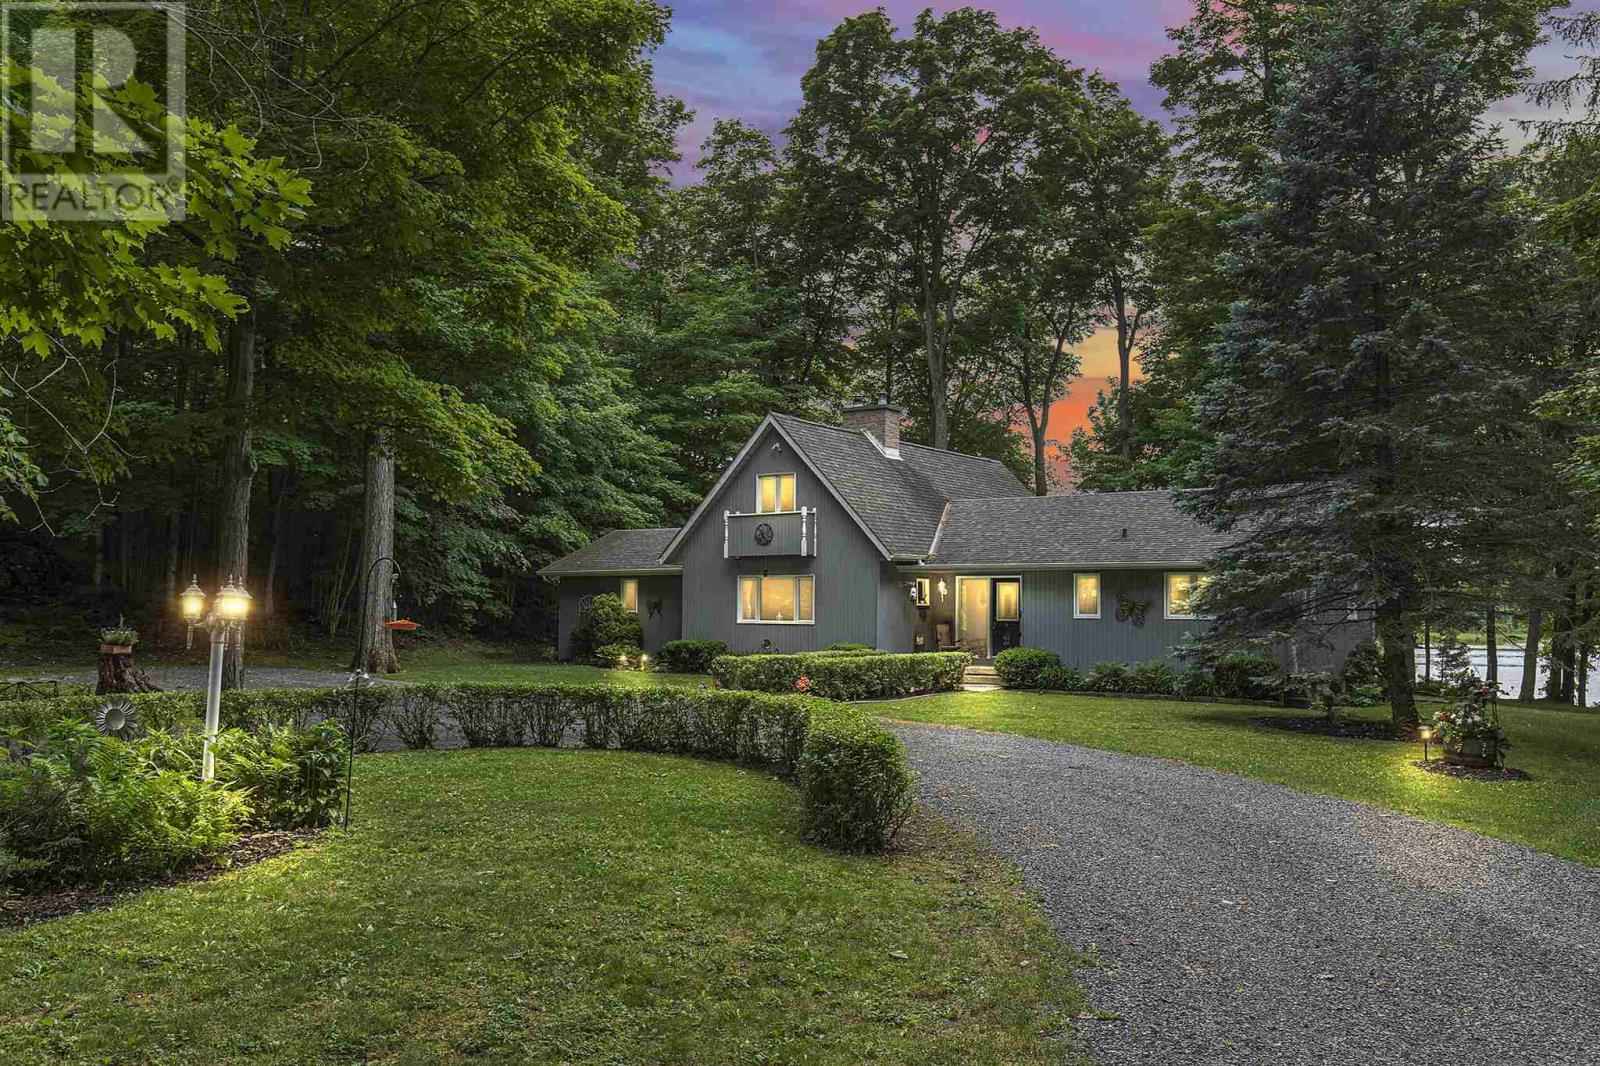 118 Haskins Point RD, seeley's bay, Ontario